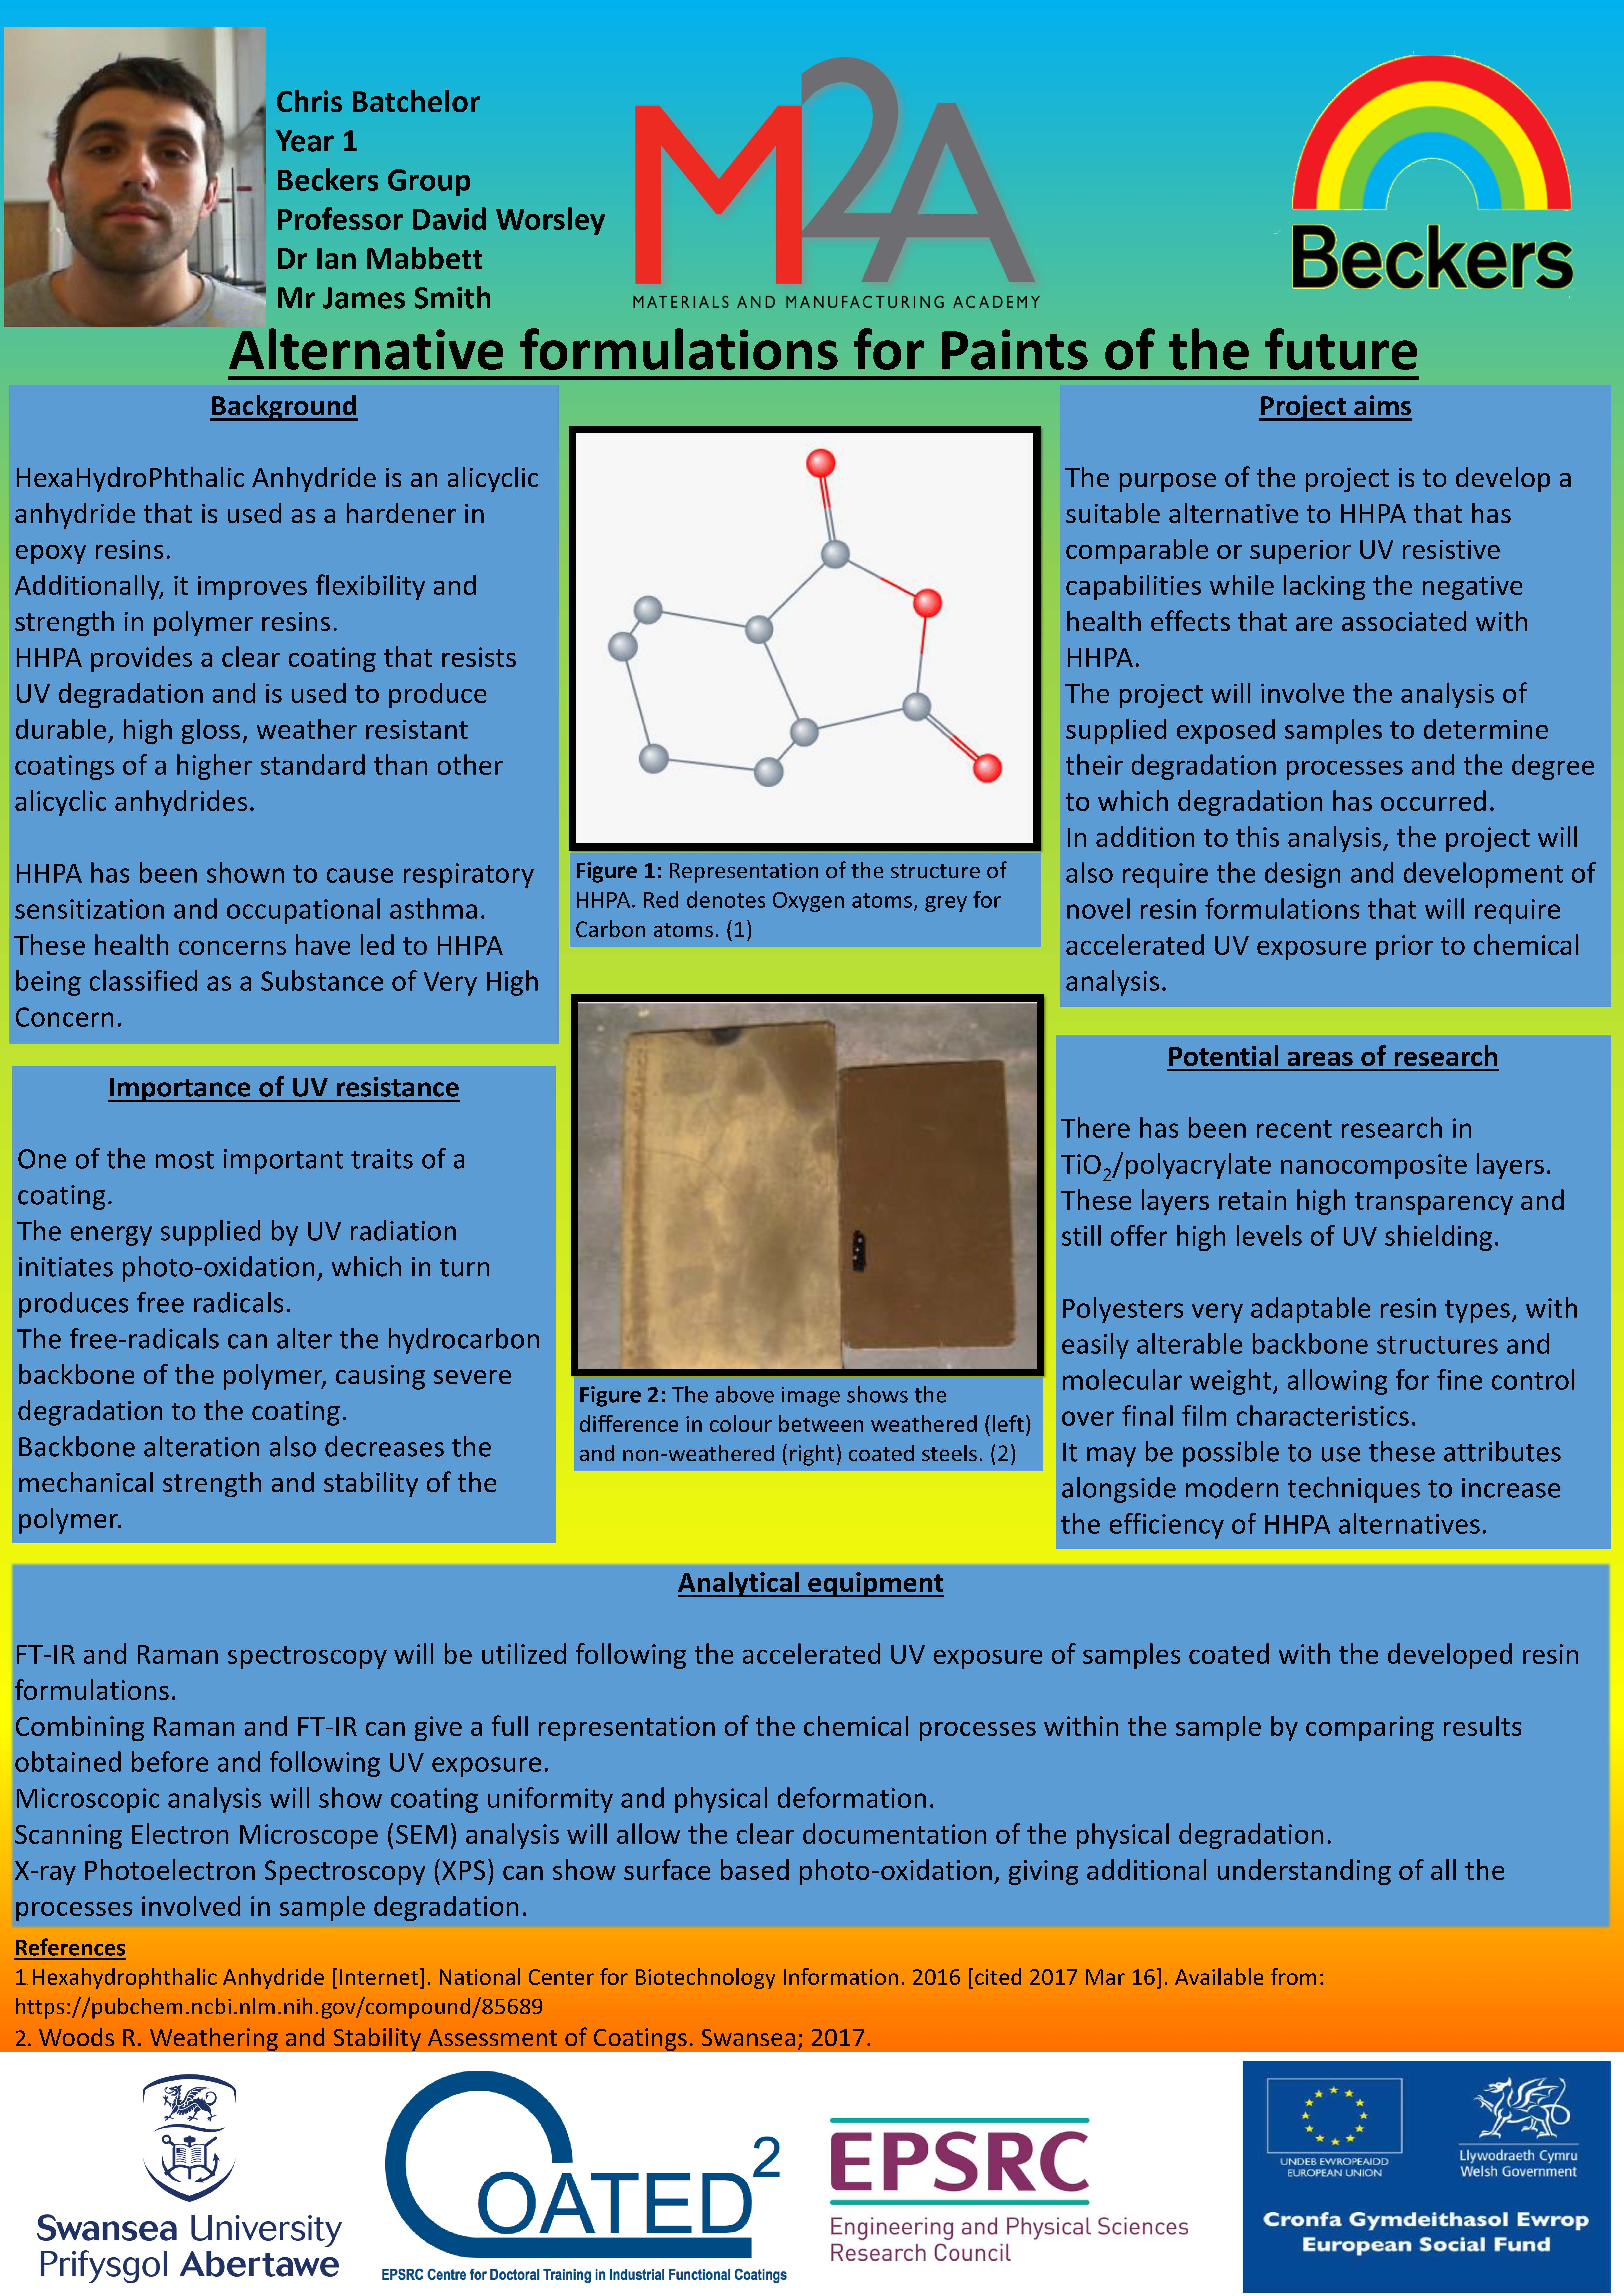 Alternative formulations for Paints of the future